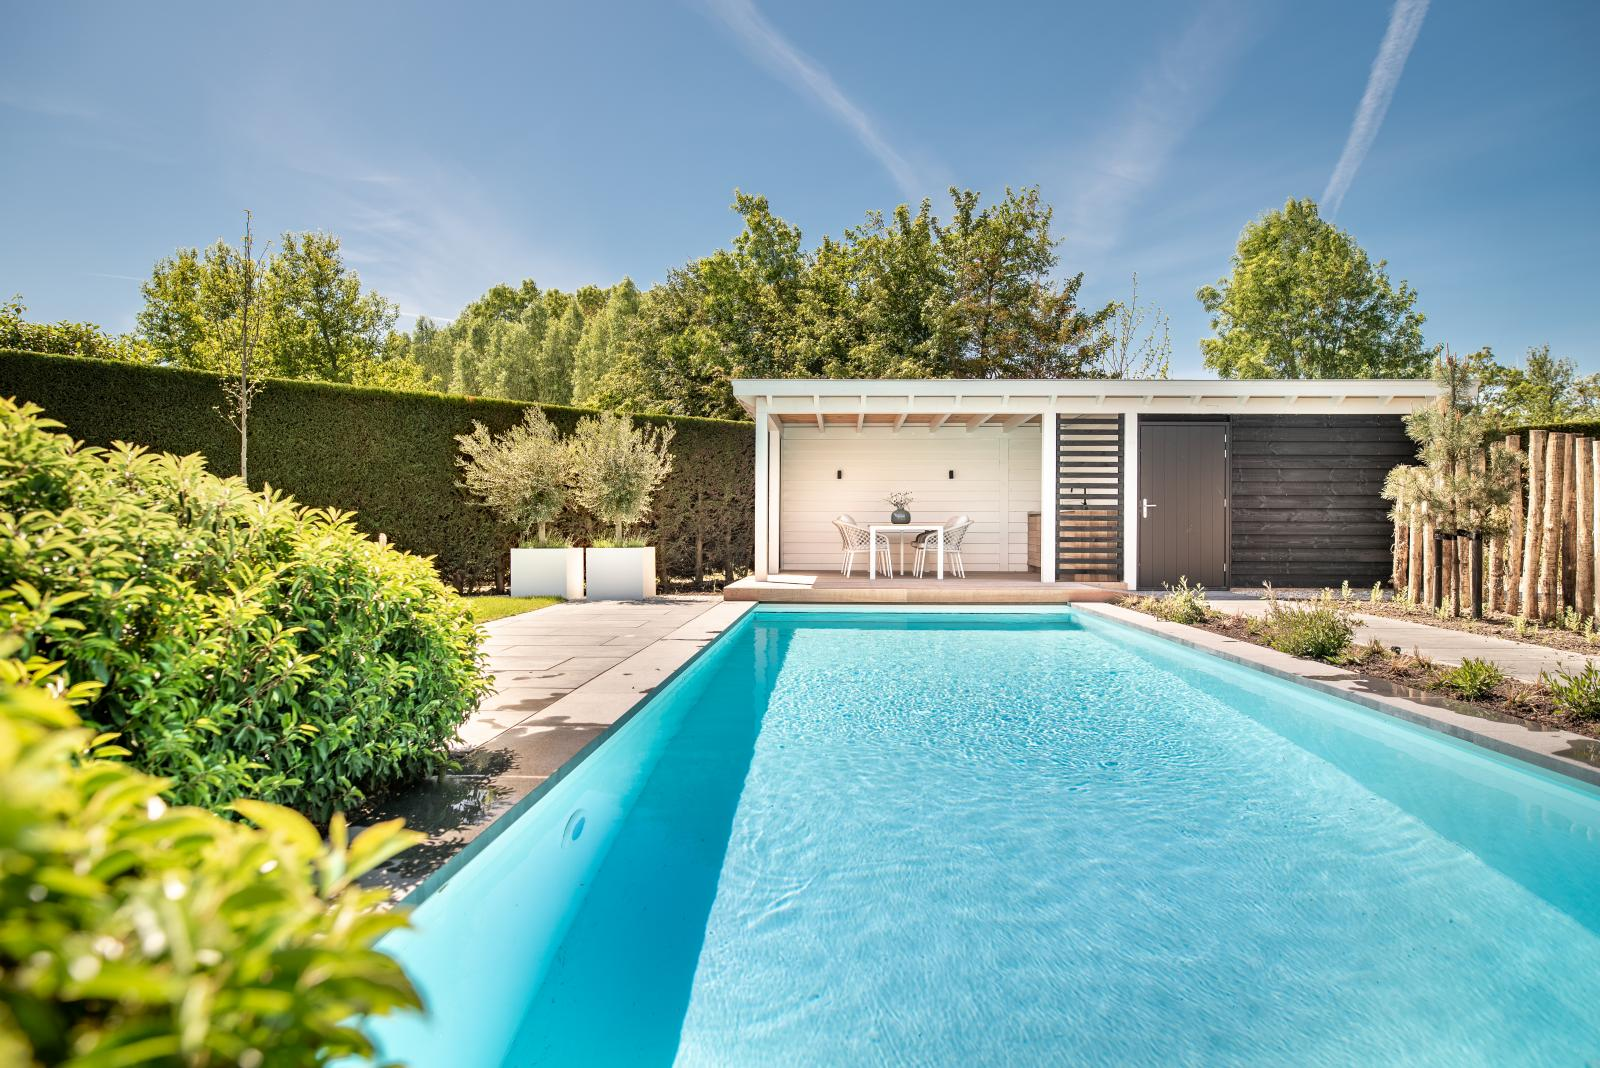 Luxe poolhouse te Kamperland 1